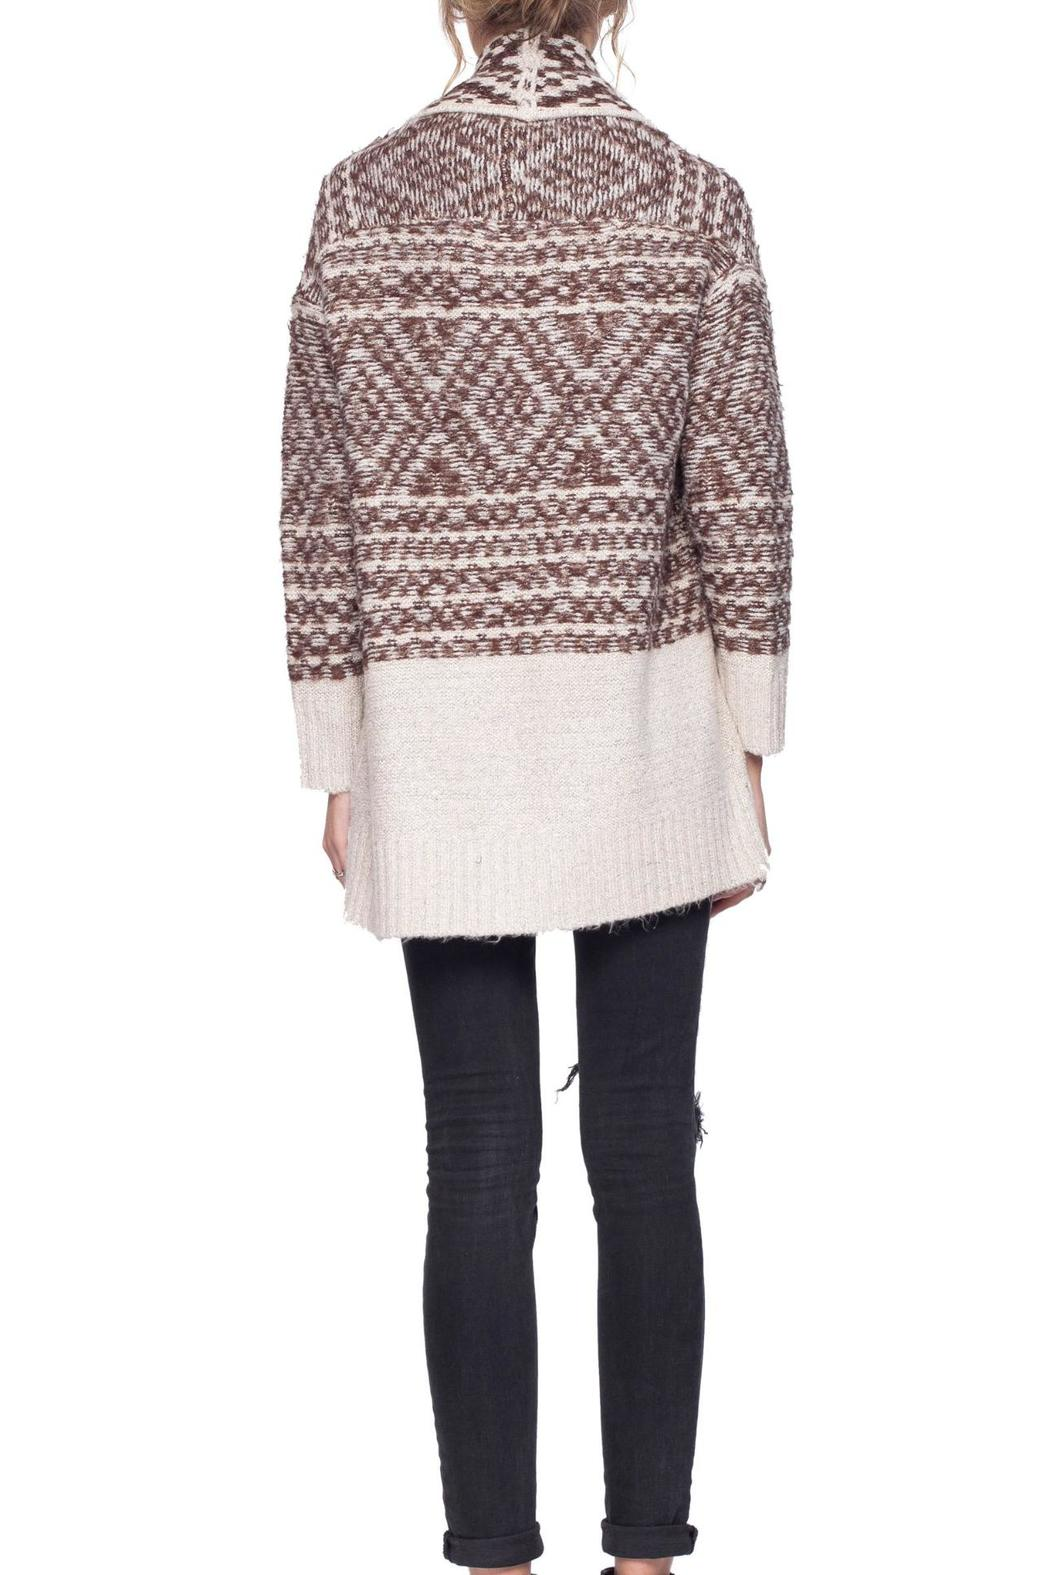 Gentle Fawn Printed Dolly Cardigan - Back Cropped Image